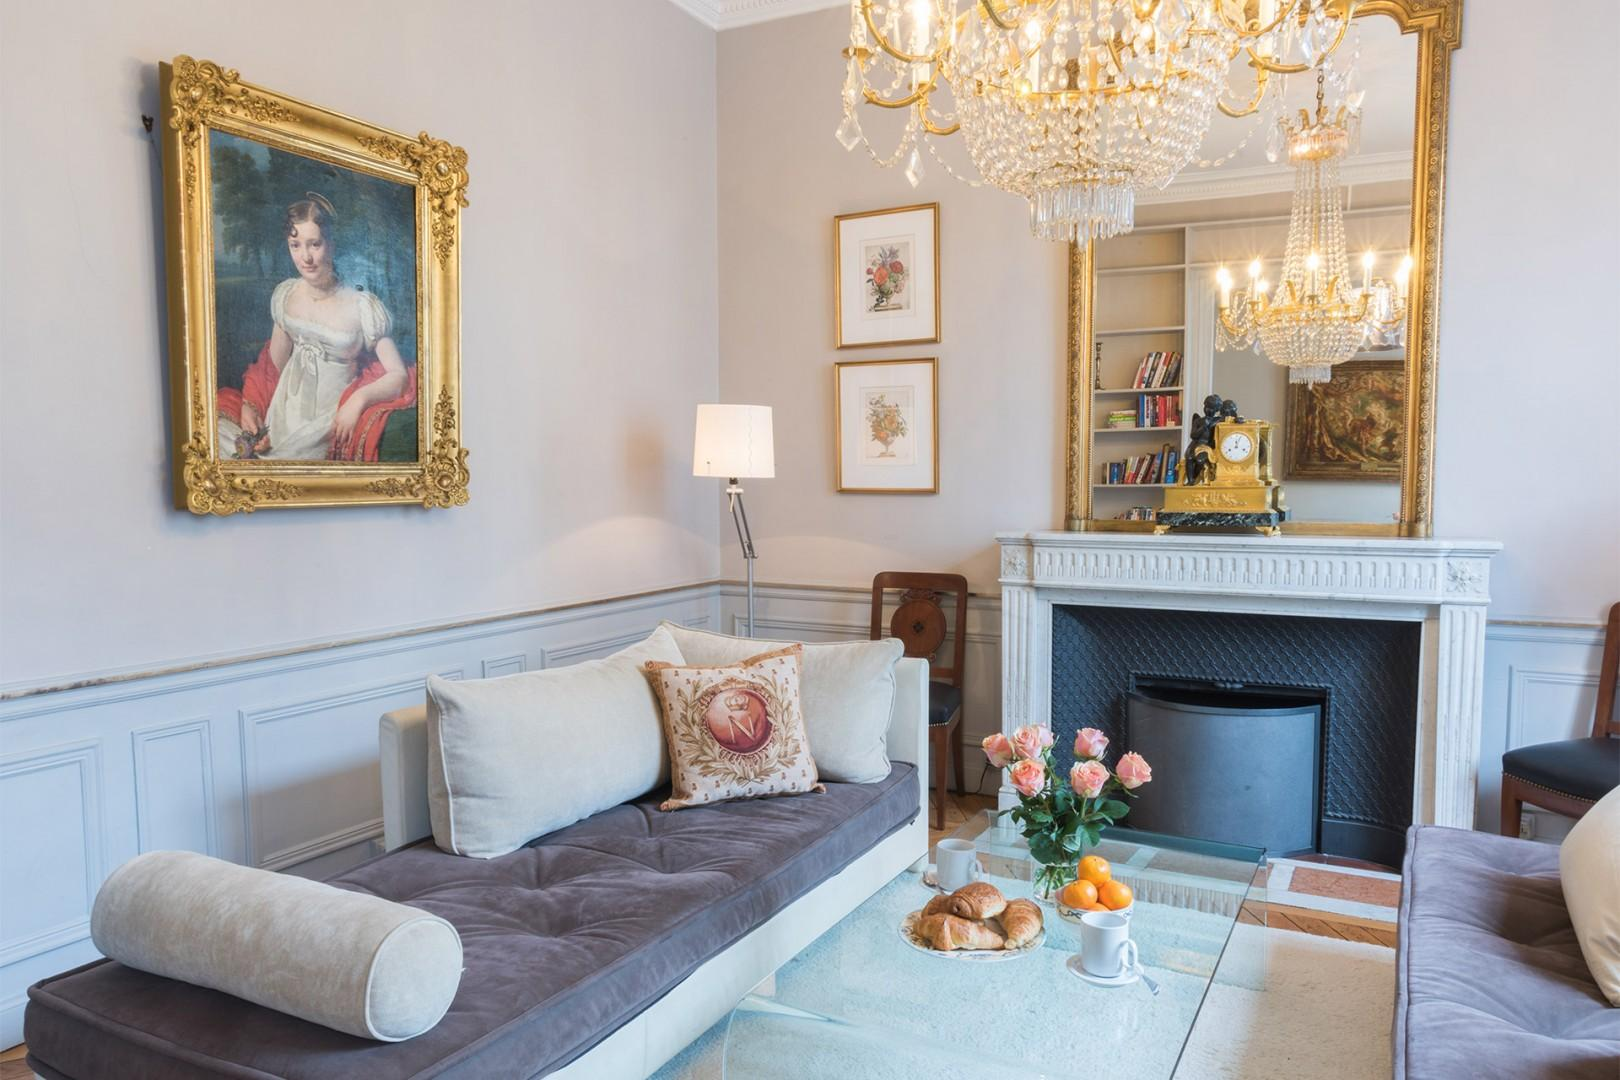 You will find refined French décor in living room 1.